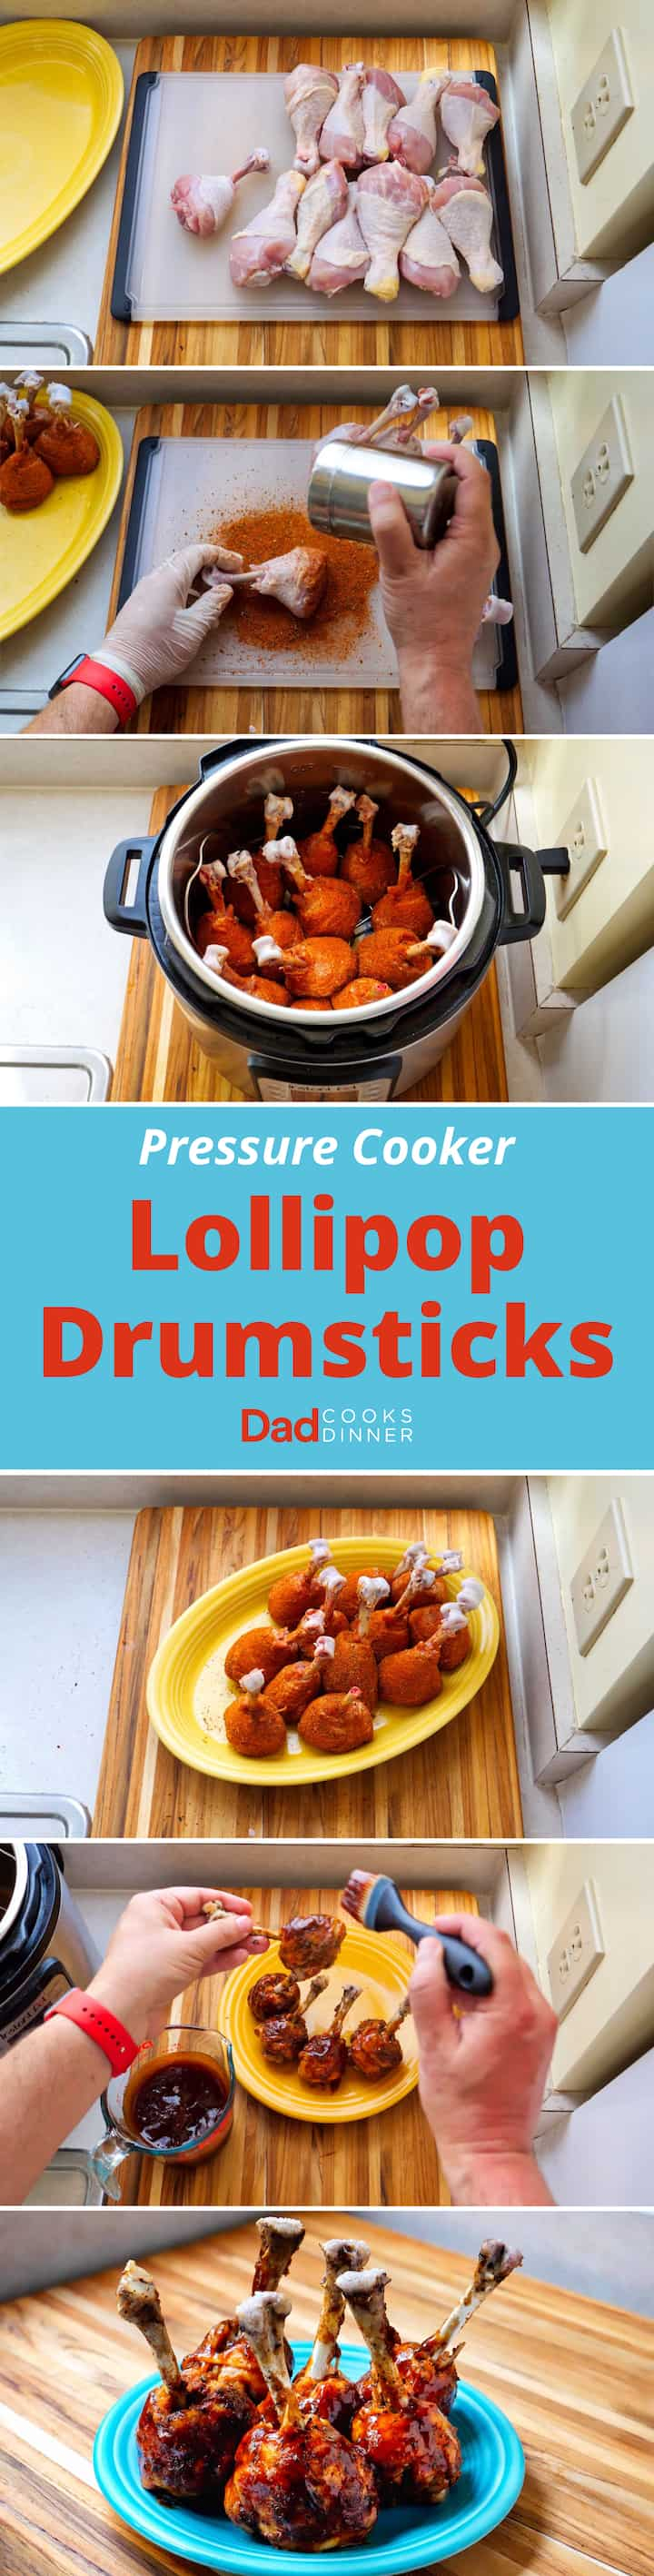 Pressure Cooker Lollipop Drumsticks. The BBQ circuit classic, brought inside to your pressure cooker. | DadCooksDinner.com